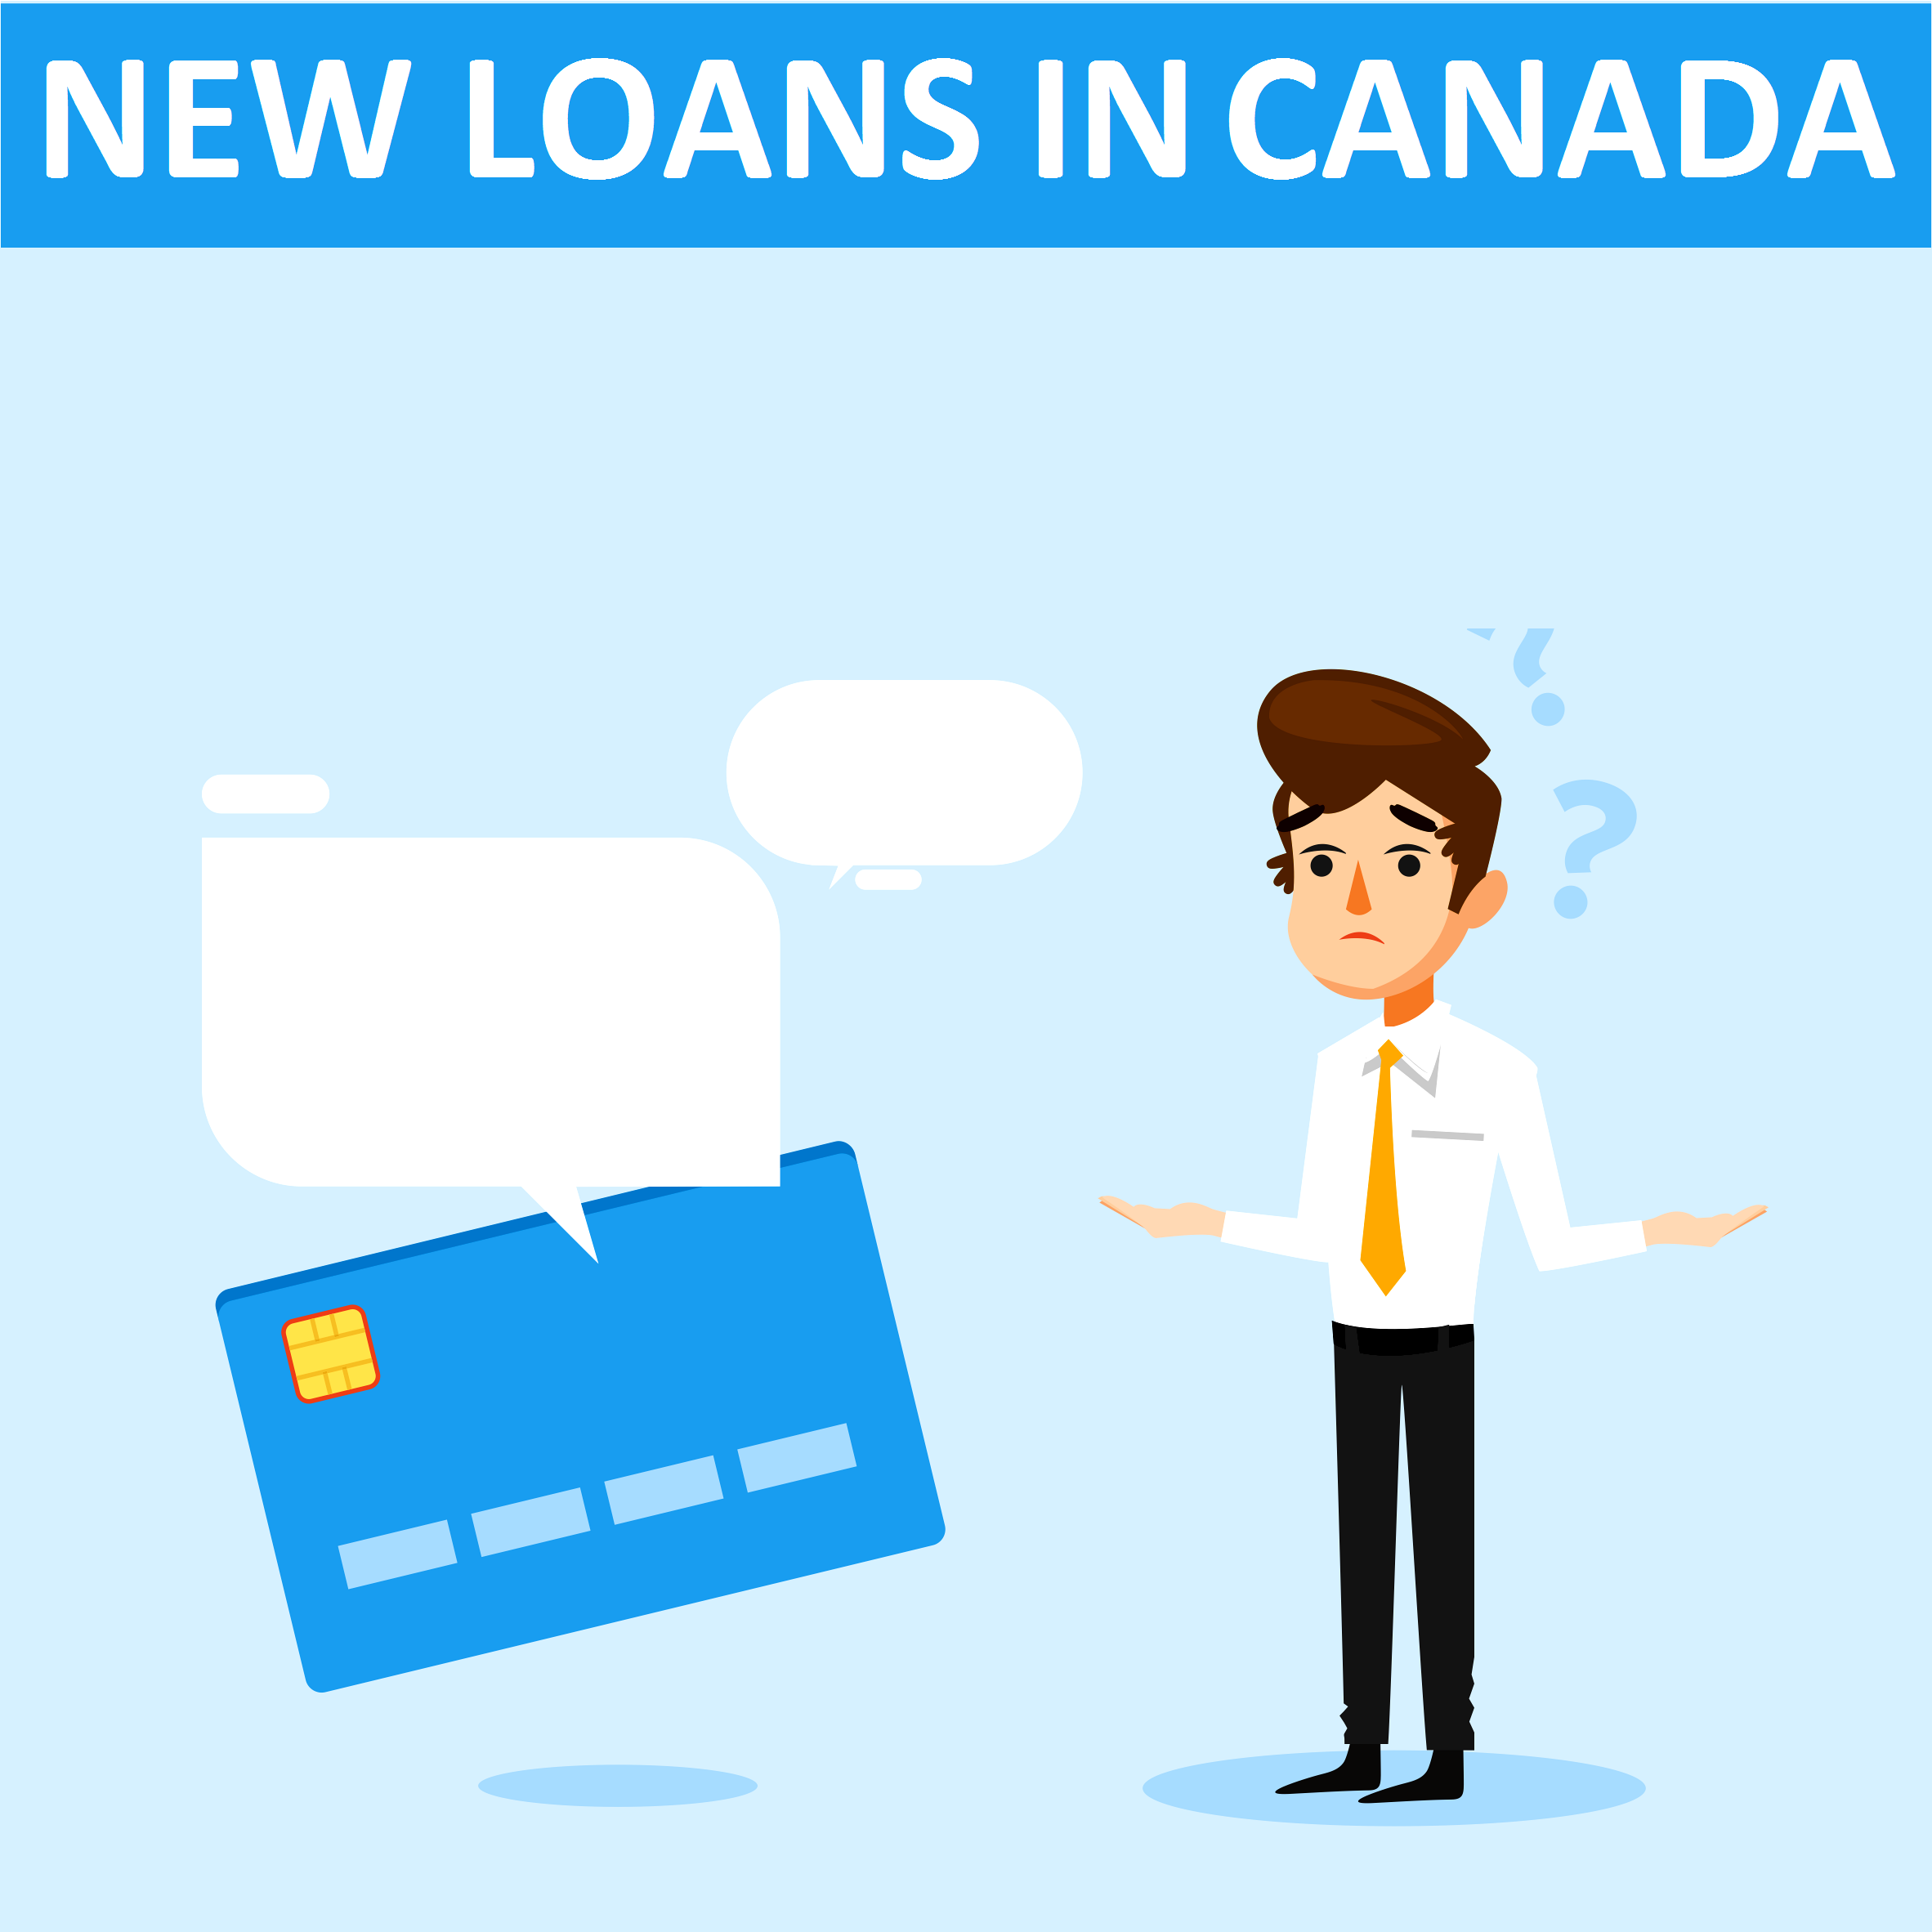 New Loans In Canada